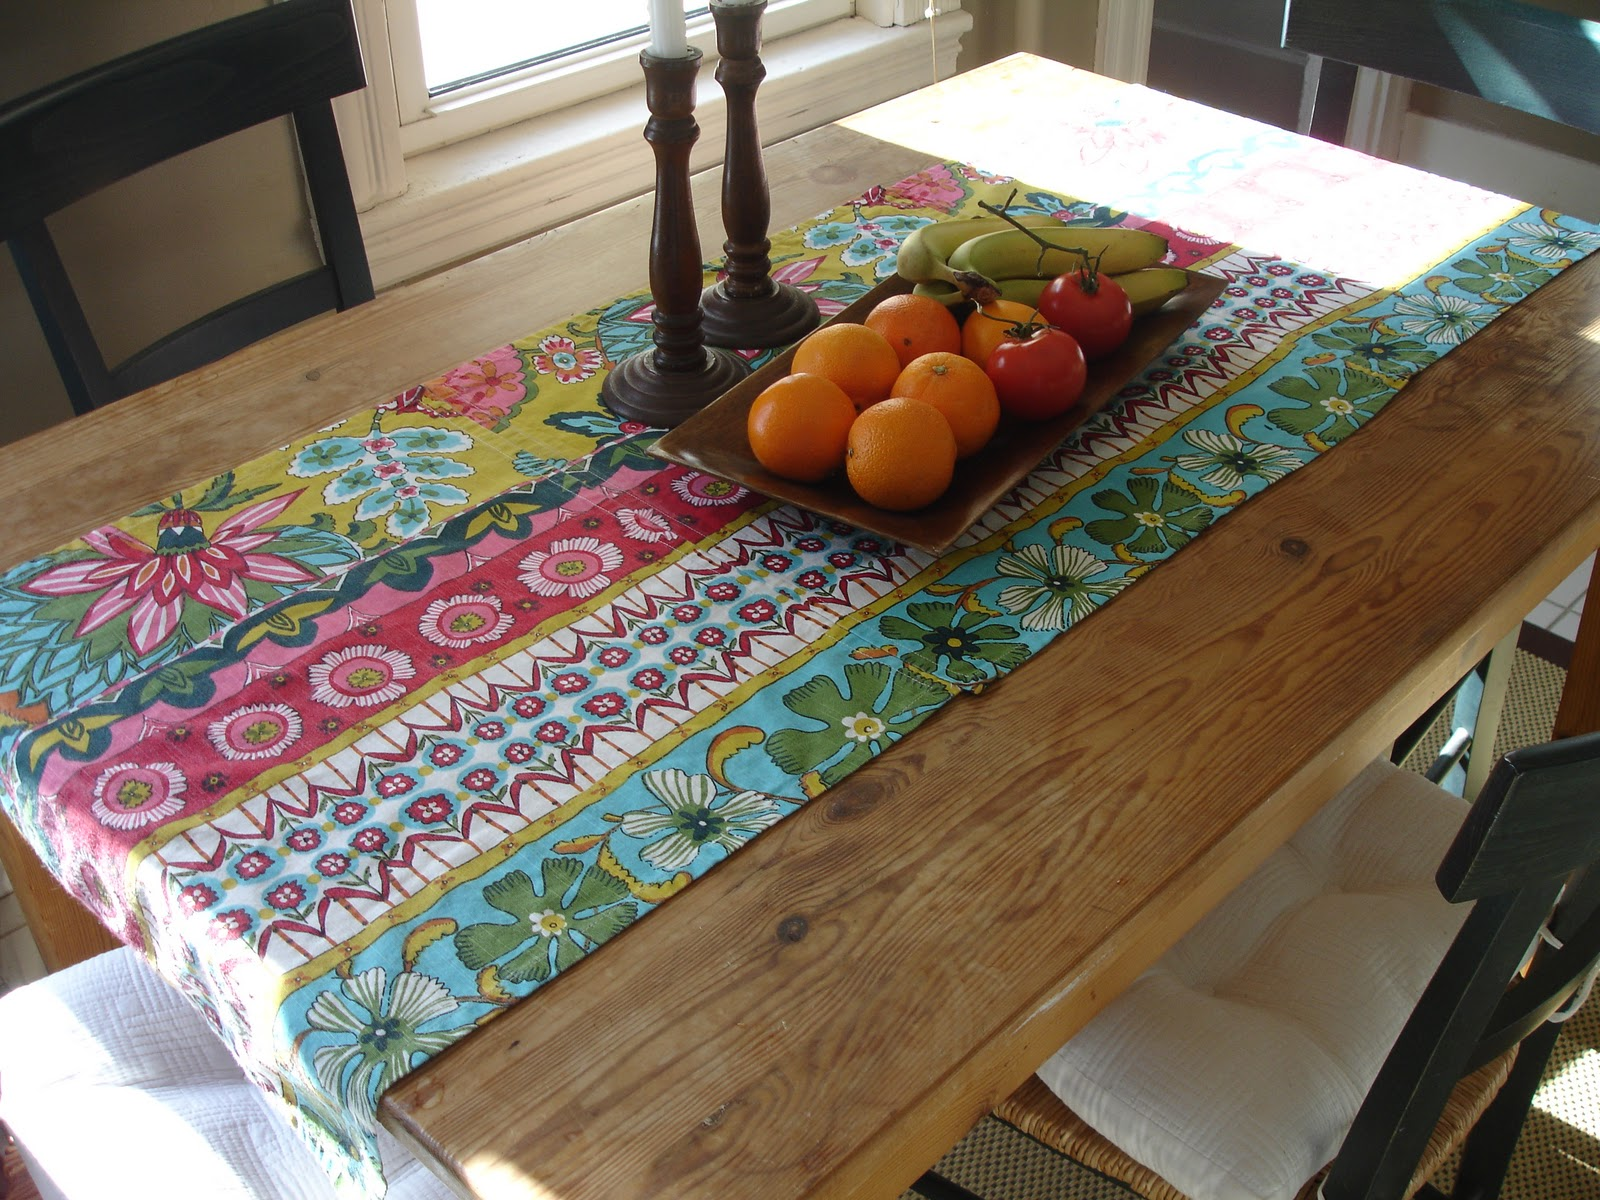 Loft Cottage Diy How To Make A No Sew Table Runner From Dinner Napkins